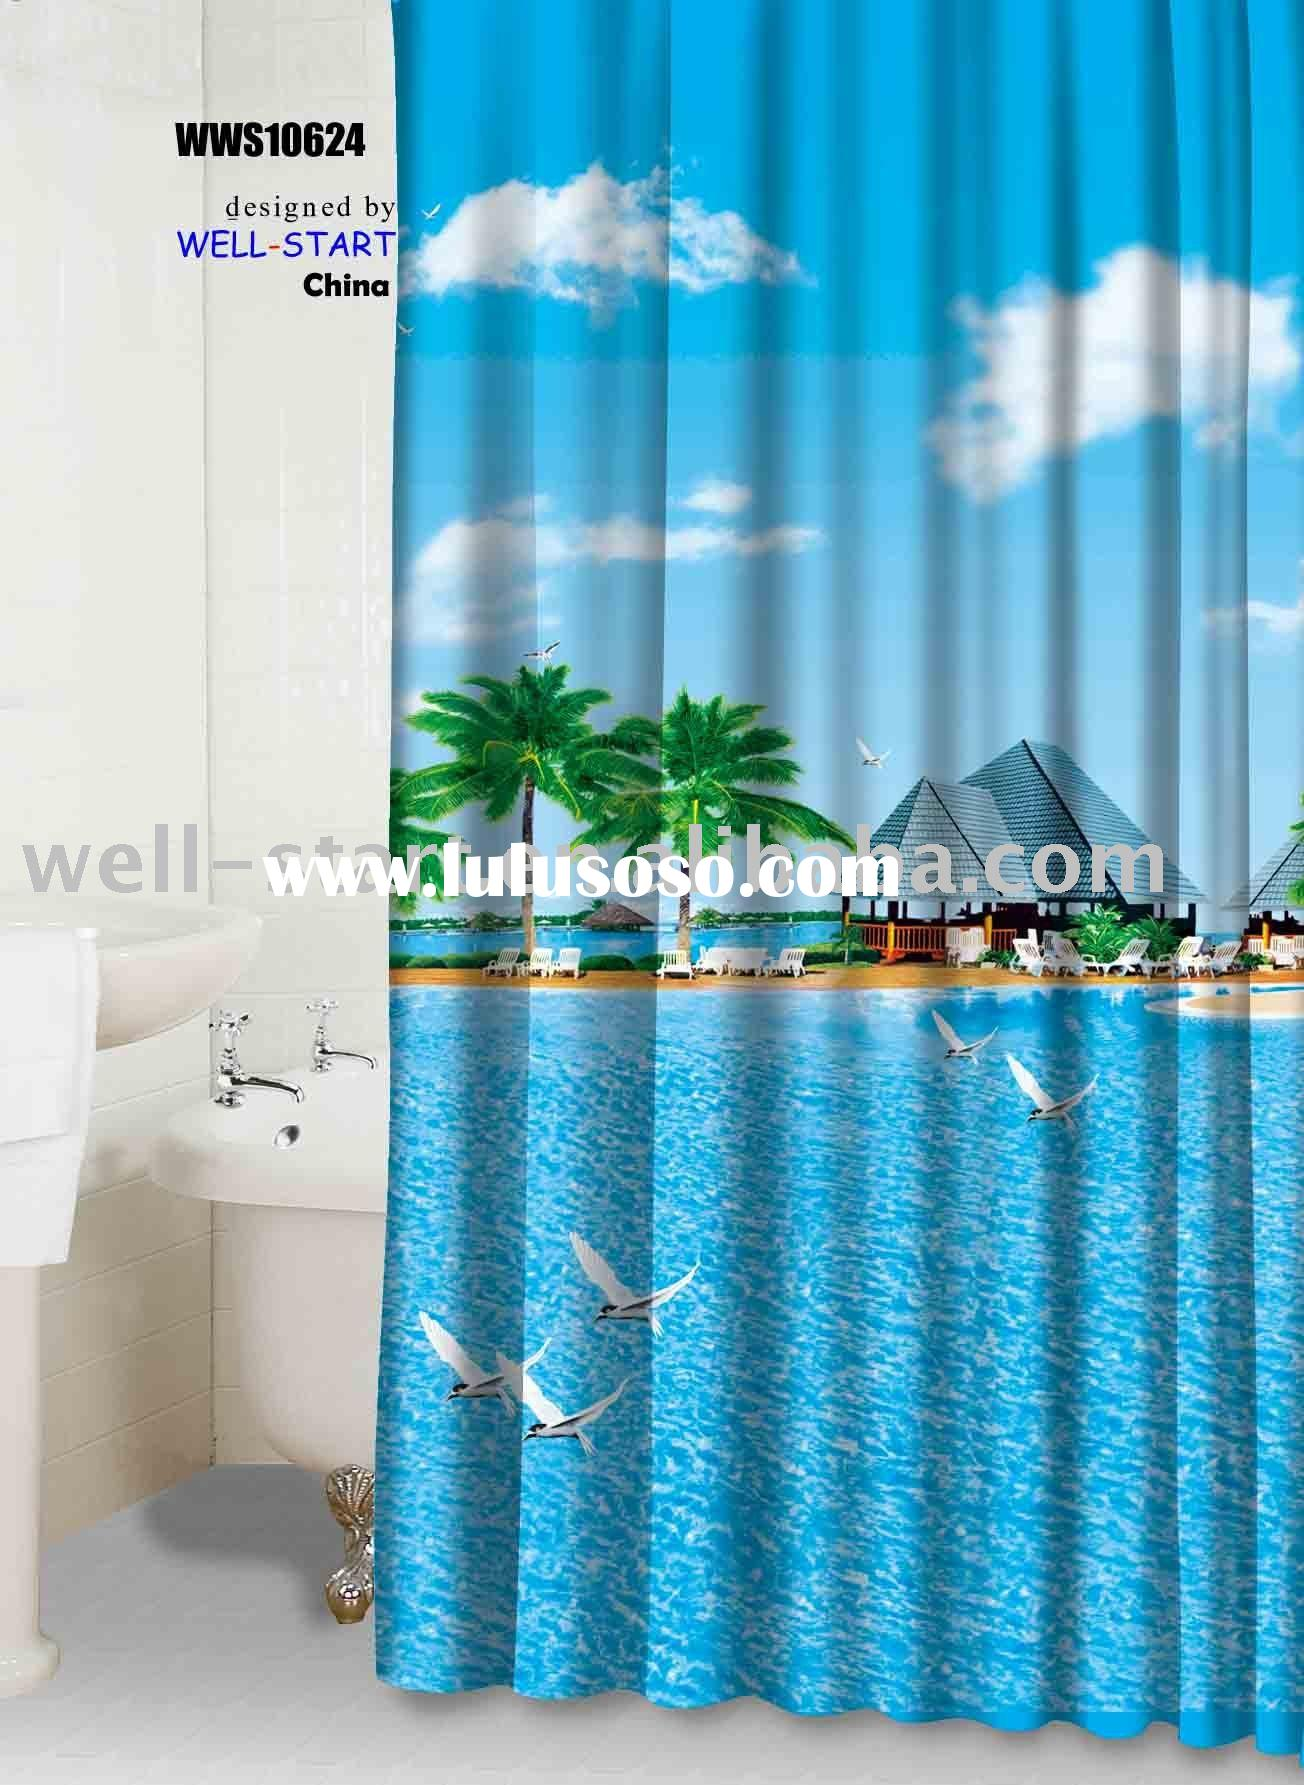 Blank Polyester Shower Curtains For Sublimation 2 Blank